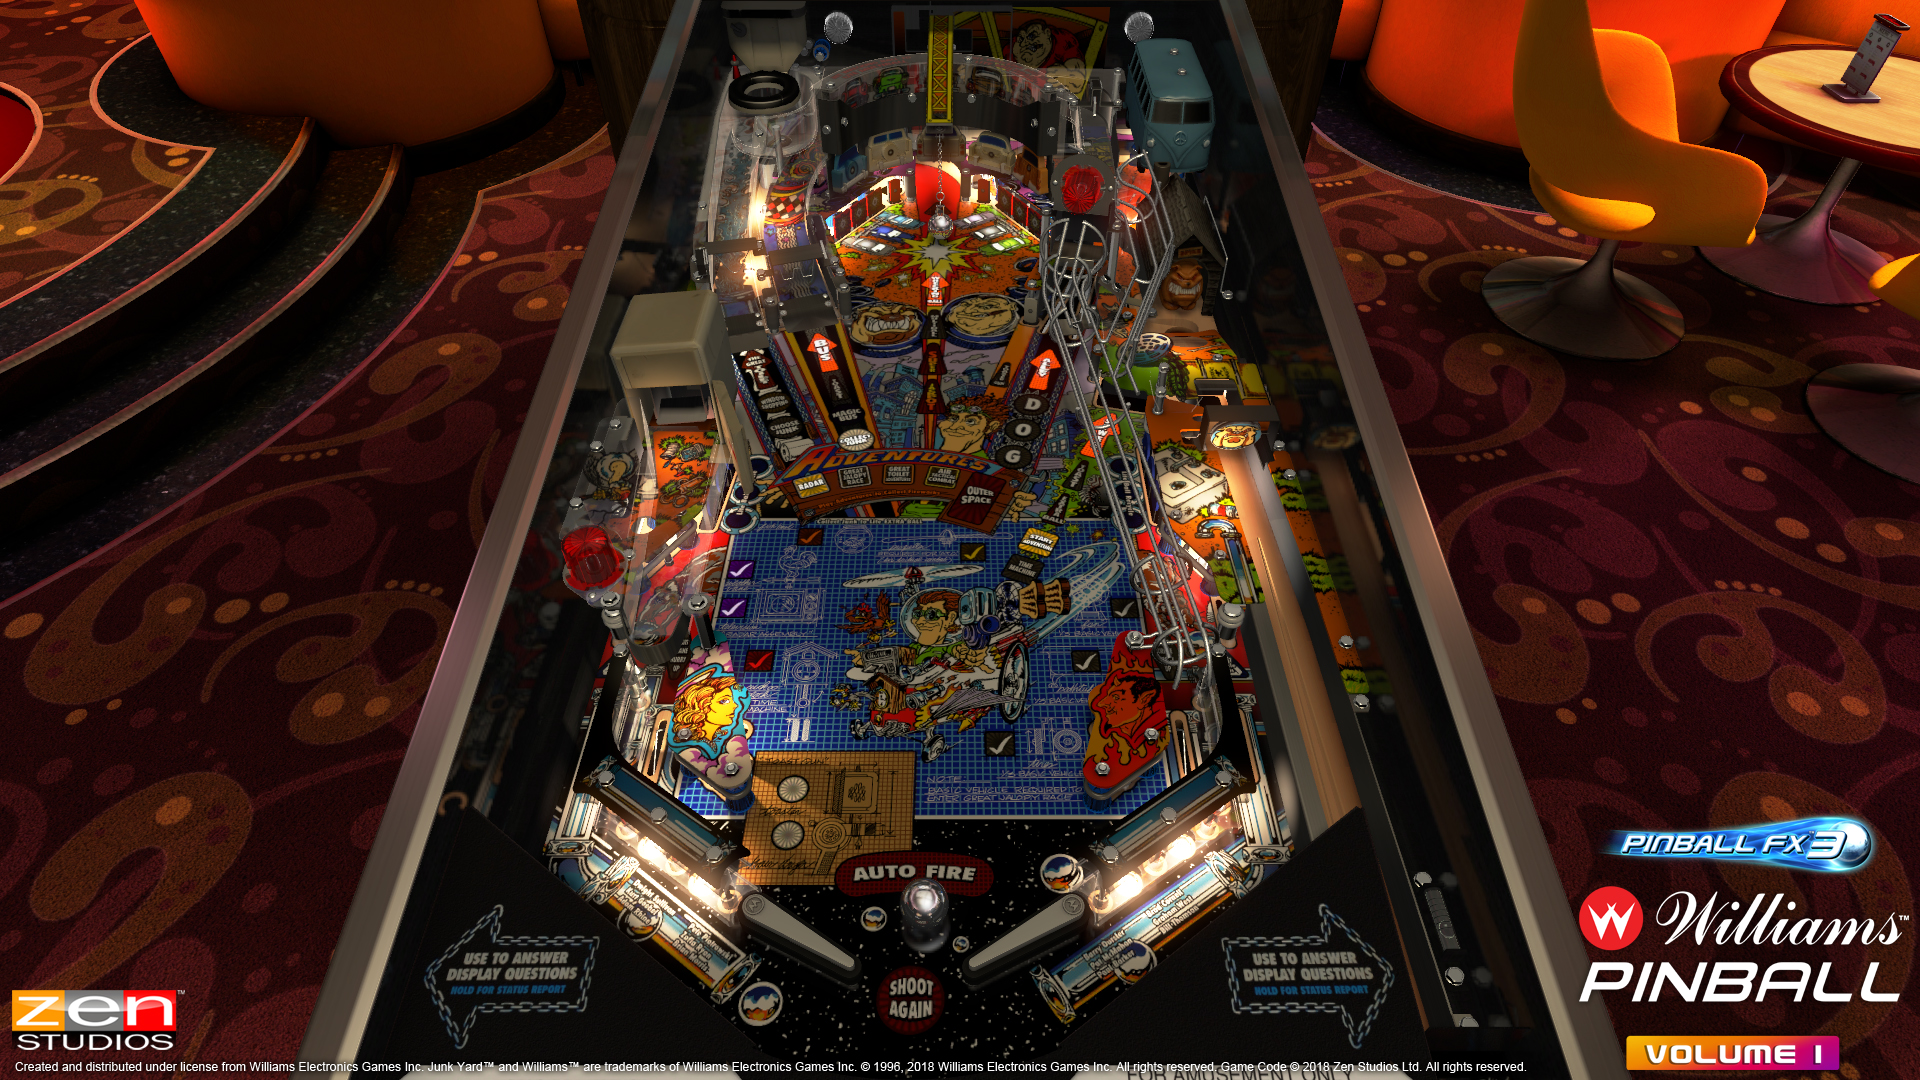 Bally/Williams pinball tables coming to Zen Studios' Pinball